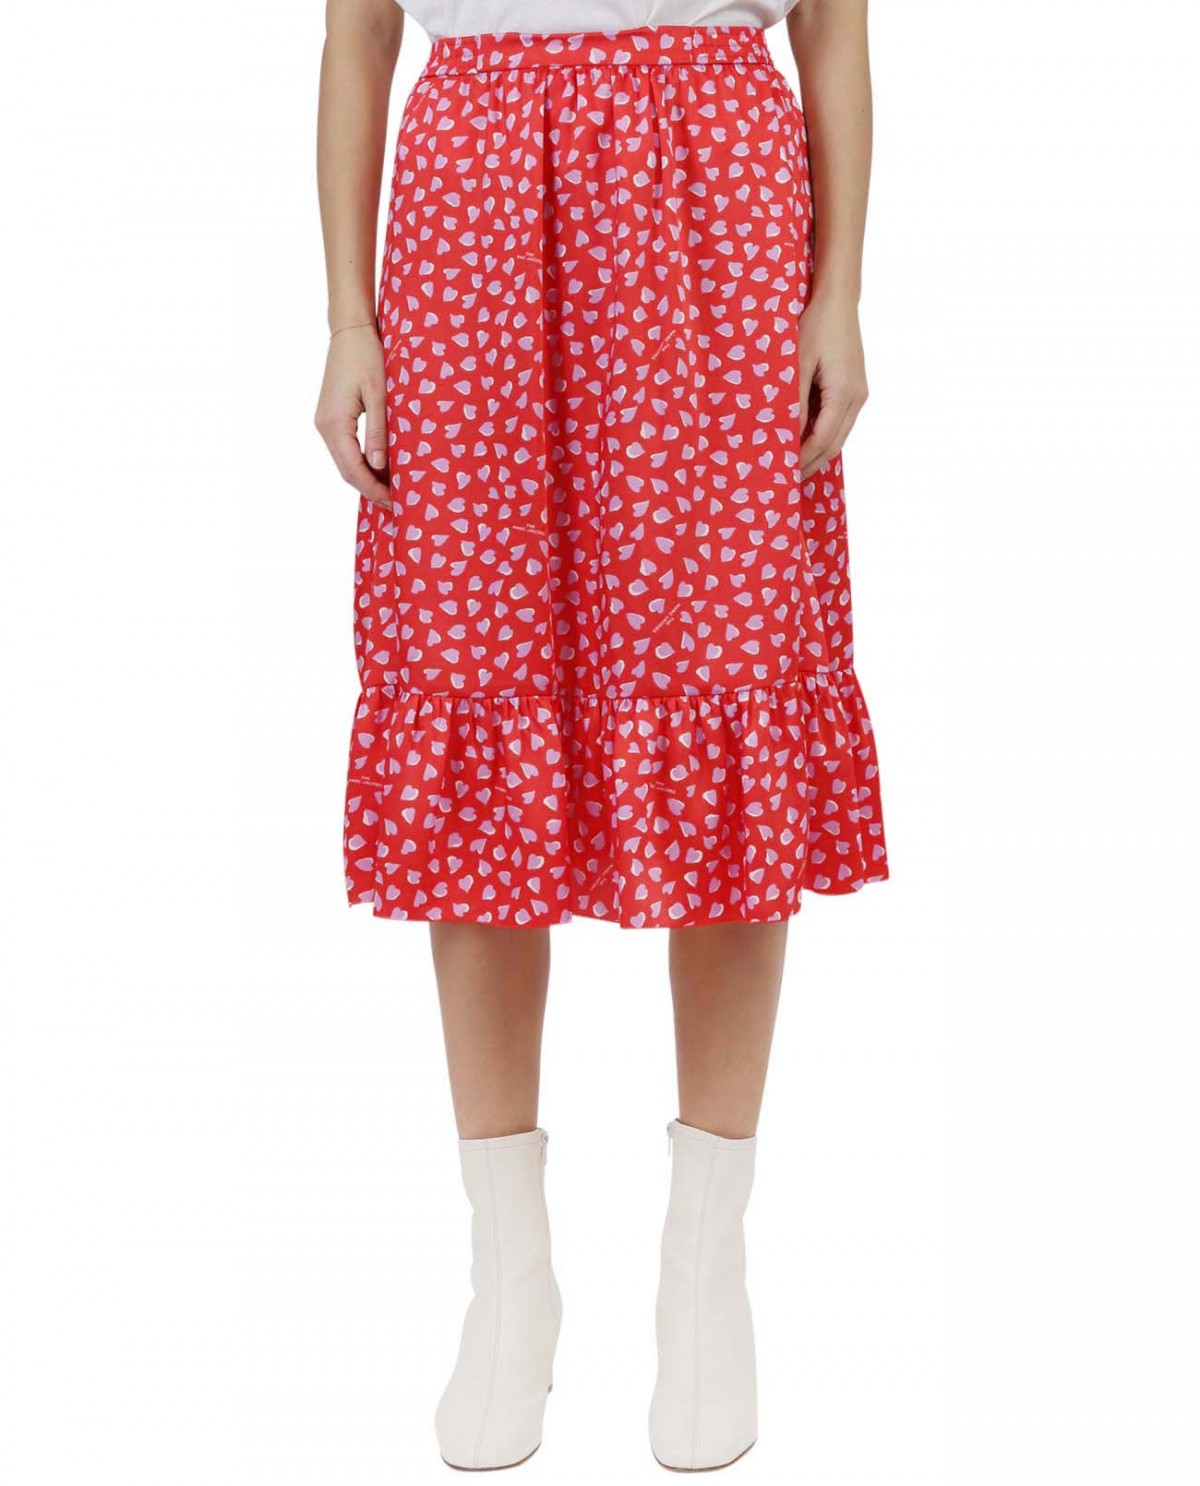 The Marc Jacobs red Heart skirt